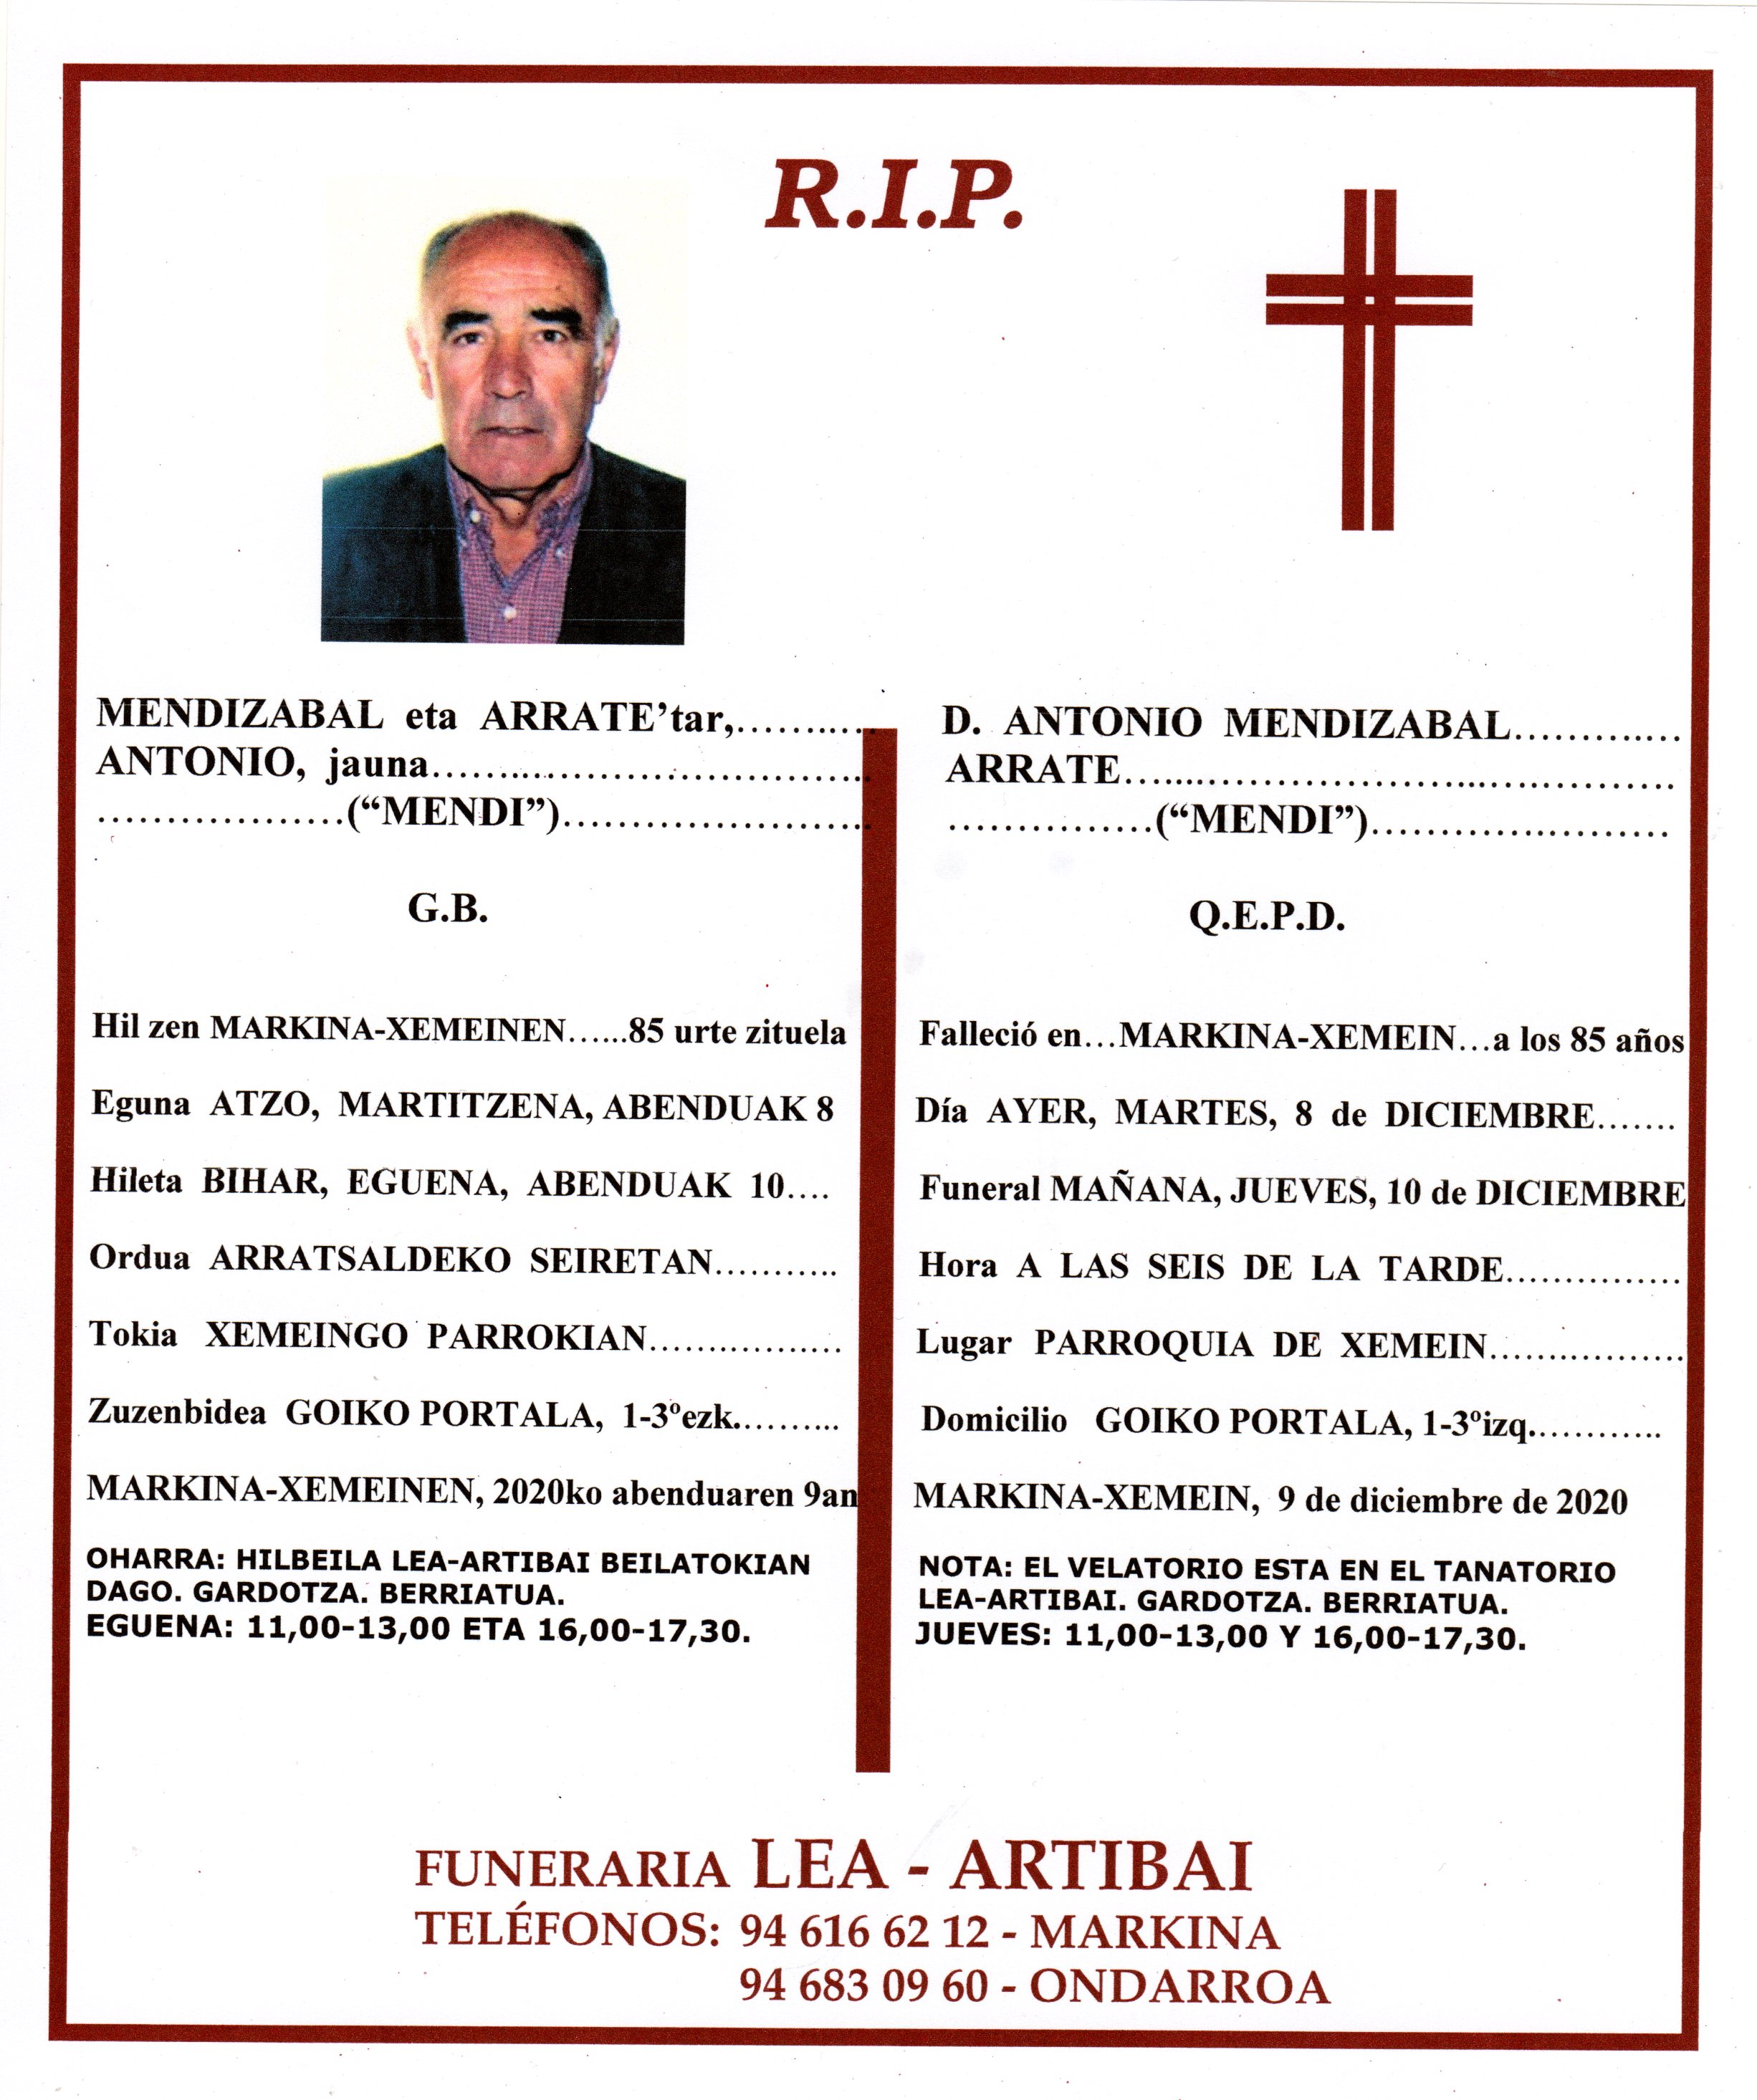 Antonio Mendizabal Arrate20201209_09492889